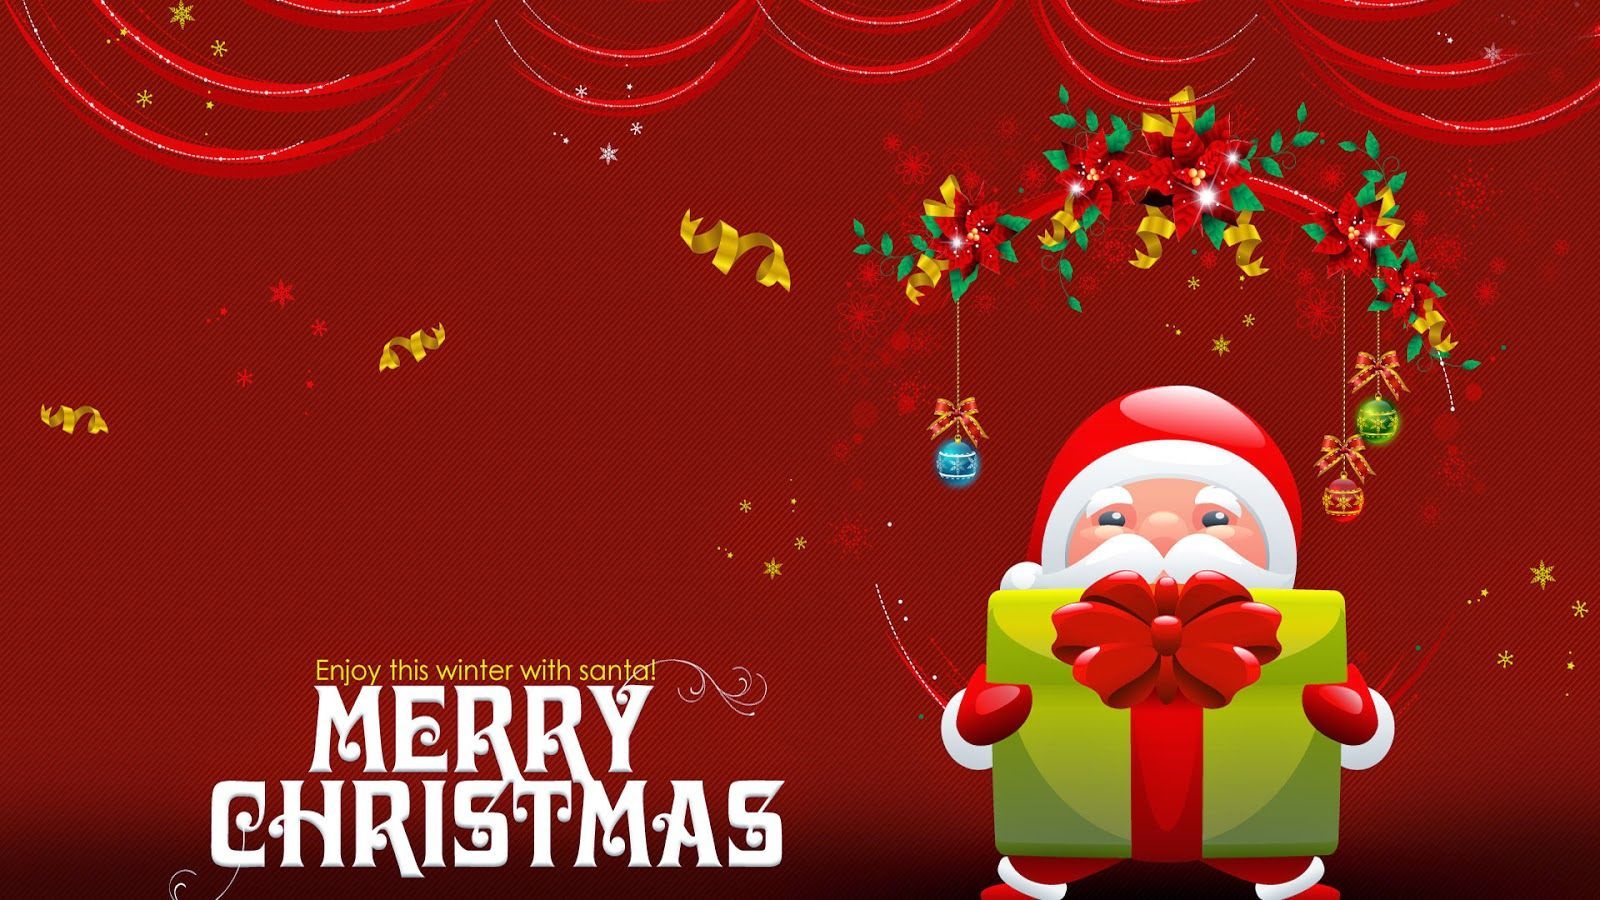 Enjoy This Winter With Santa Greetings Wishes Text Hd Wallpaper Jpg Merry Christmas Message Merry Christmas Background Merry Christmas Images